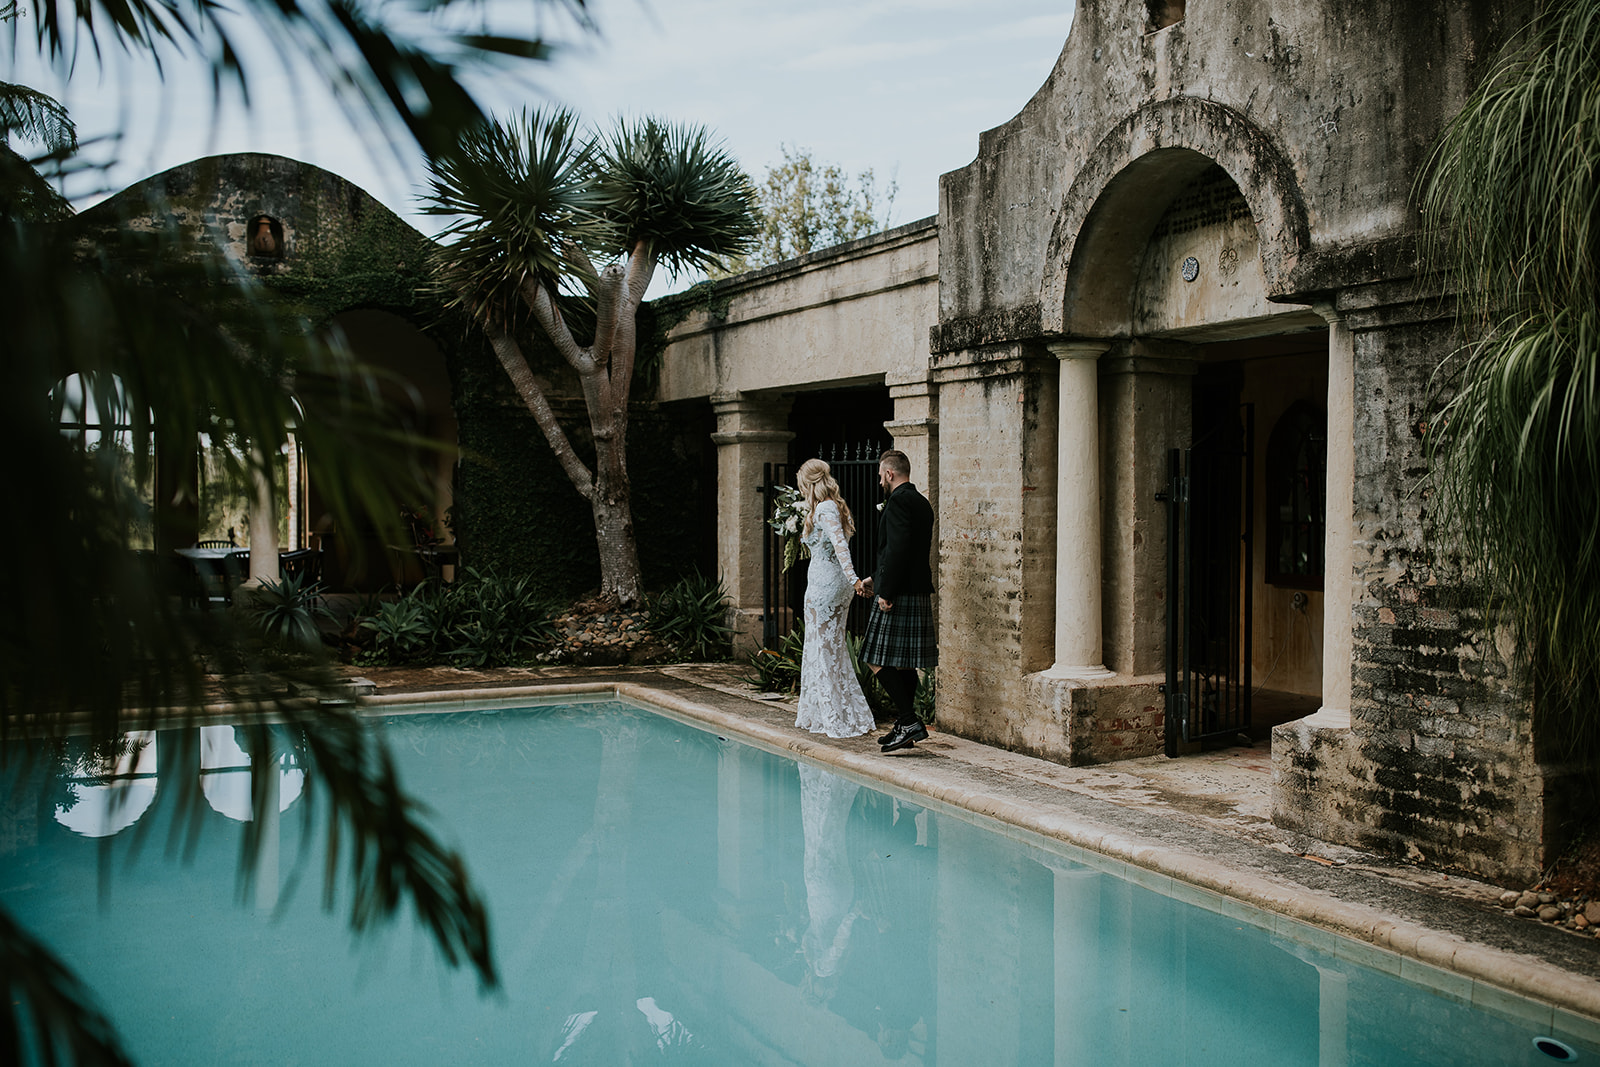 Bride leading groom around rustic pool villa.